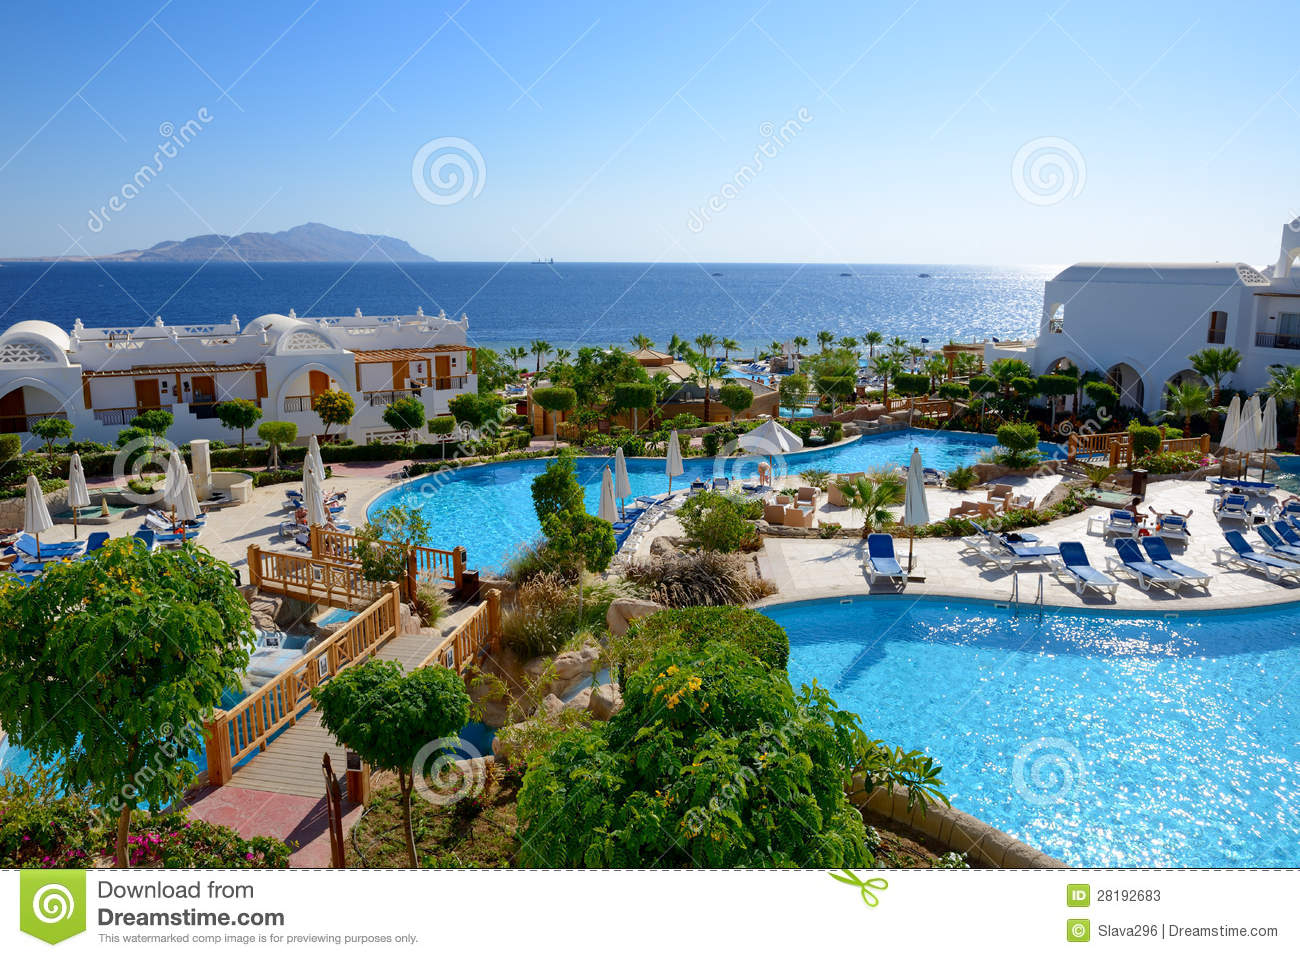 Swimming Pools At The Luxury Hotel Royalty Free Stock